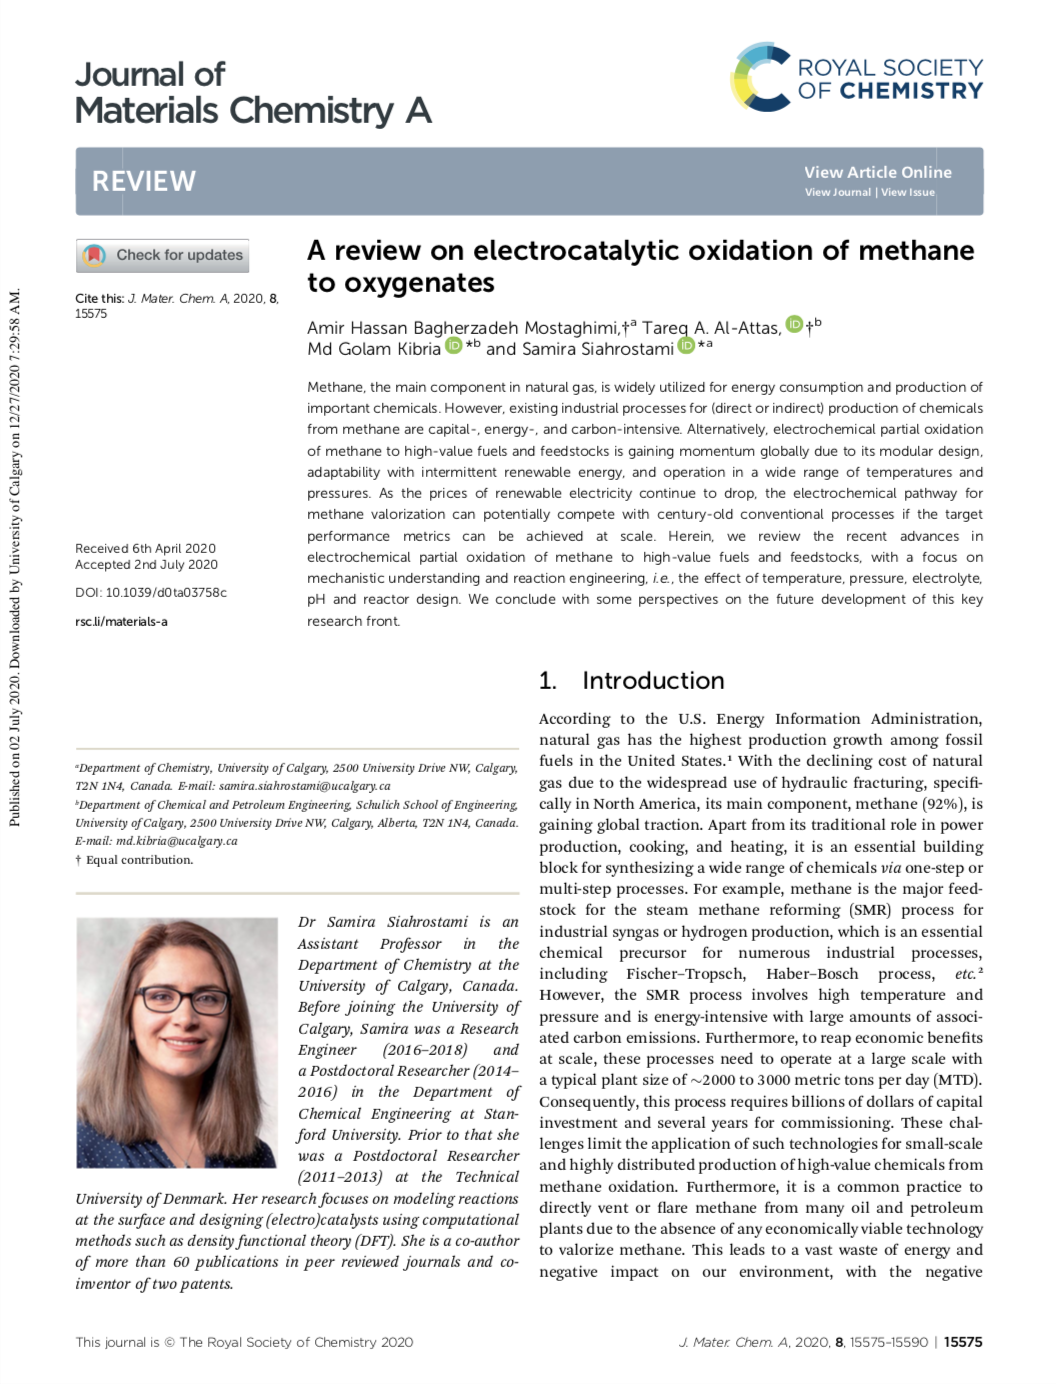 A review on electrocatalytic oxidation of methane to oxygenates